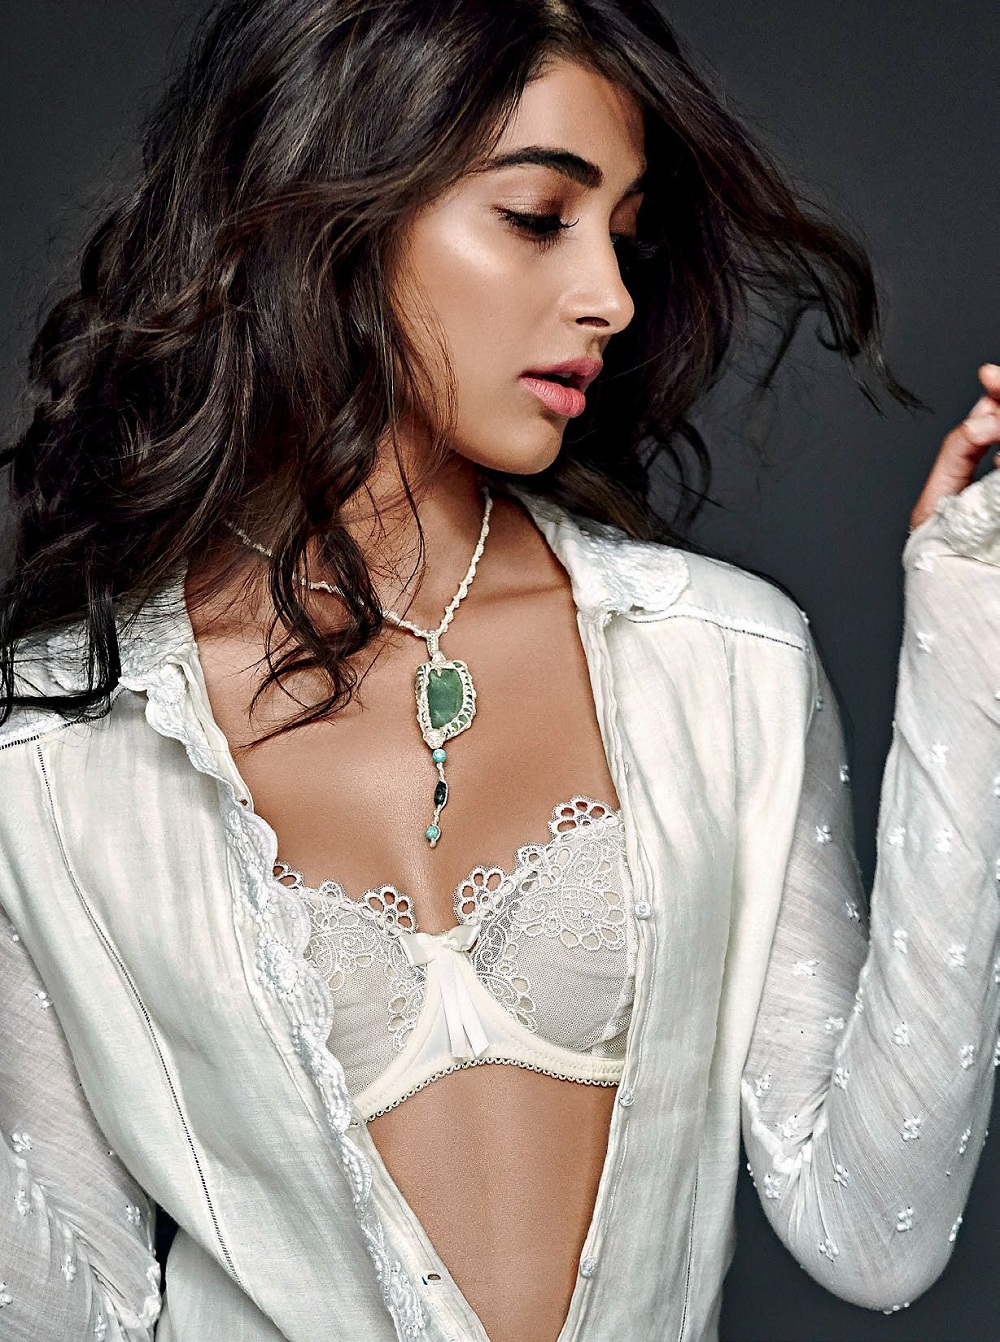 Pooja Hegde Scorching Hot Photoshoot Pics-5898